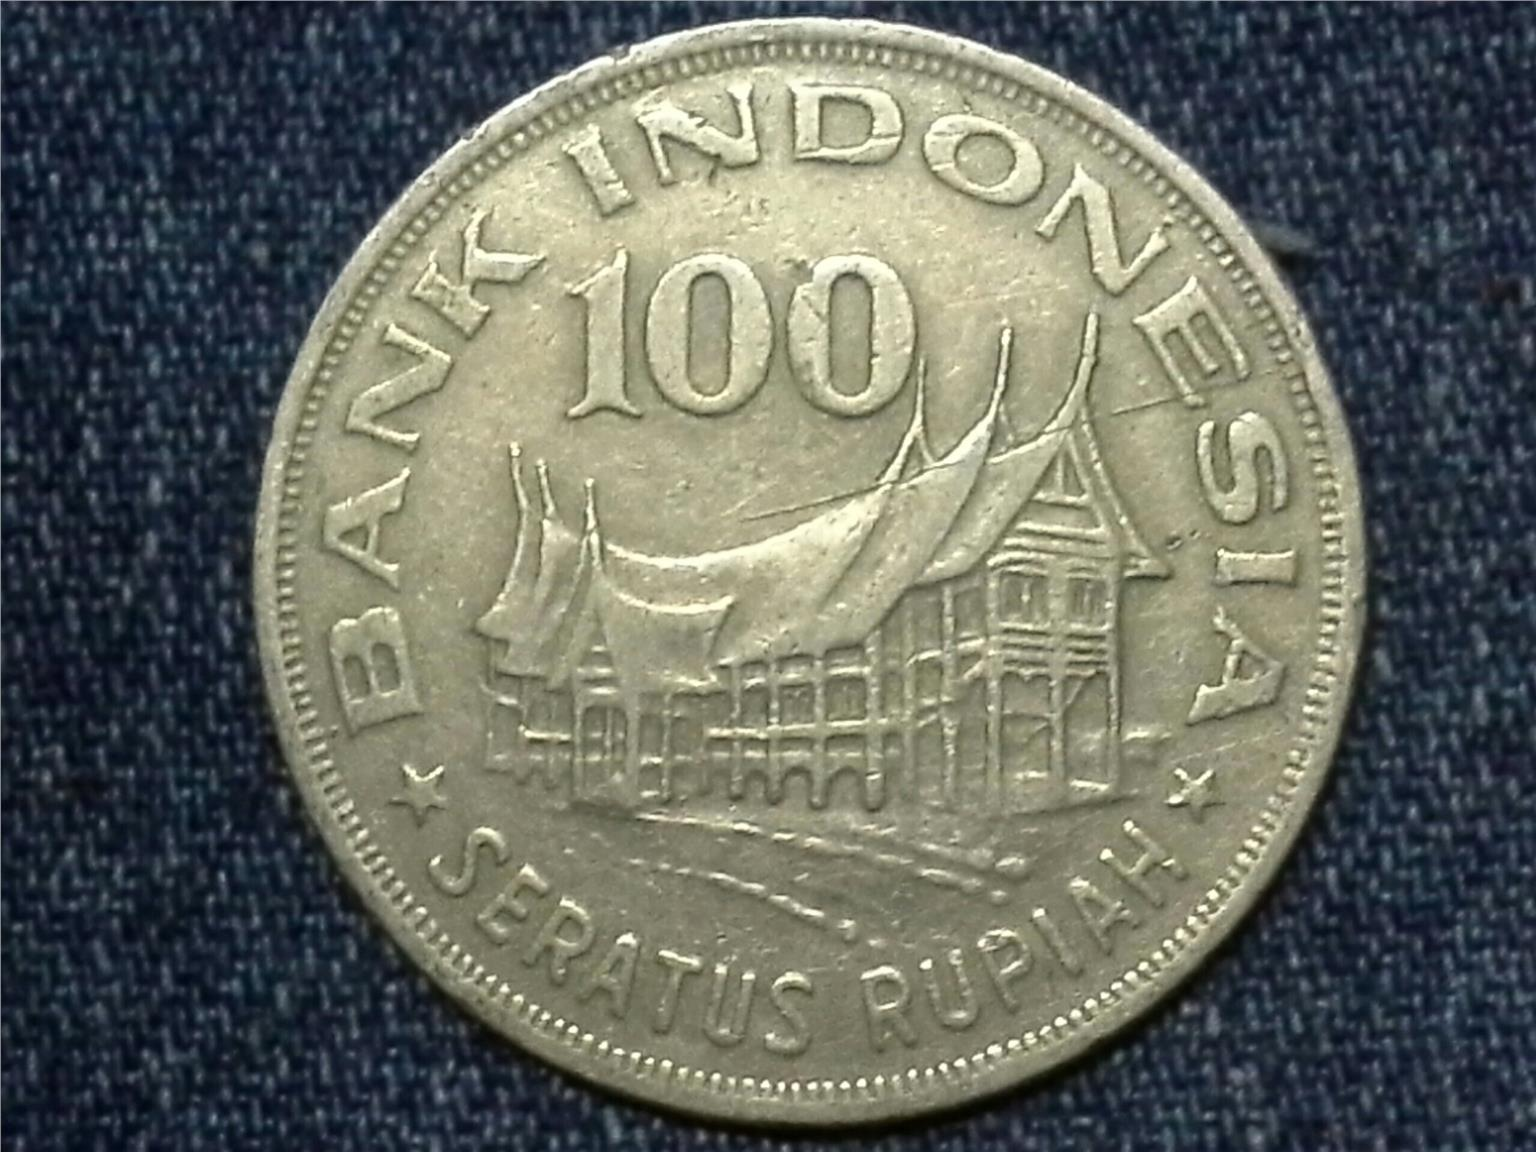 1978 INDONESIA 100 RUPIAH  COIN # A